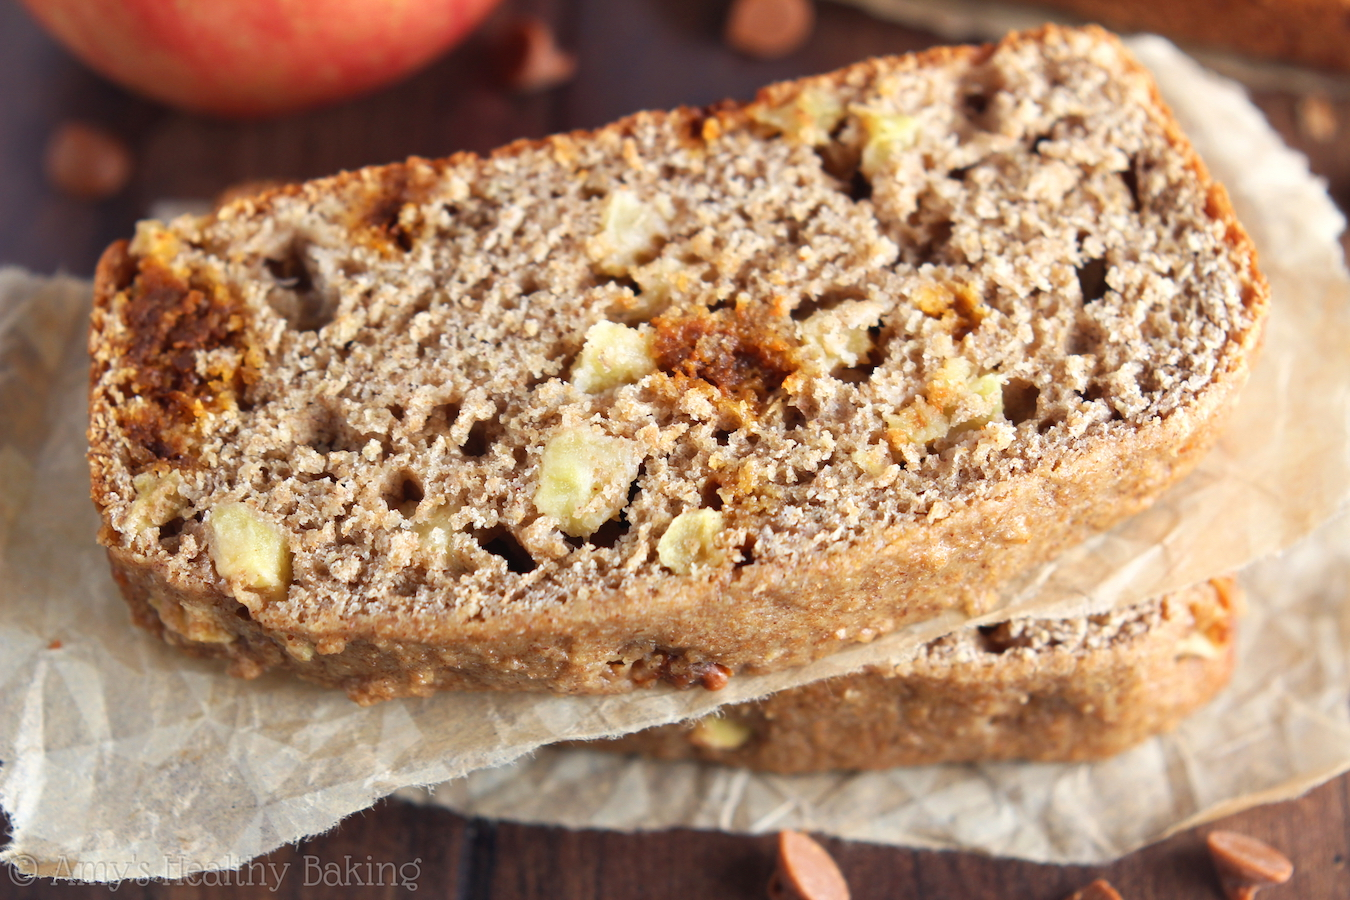 Cinnamon Apple Beer Bread -- a sweet & healthier spin on a classic! The whole loaf disappeared in minutes. Everyone raved about it!